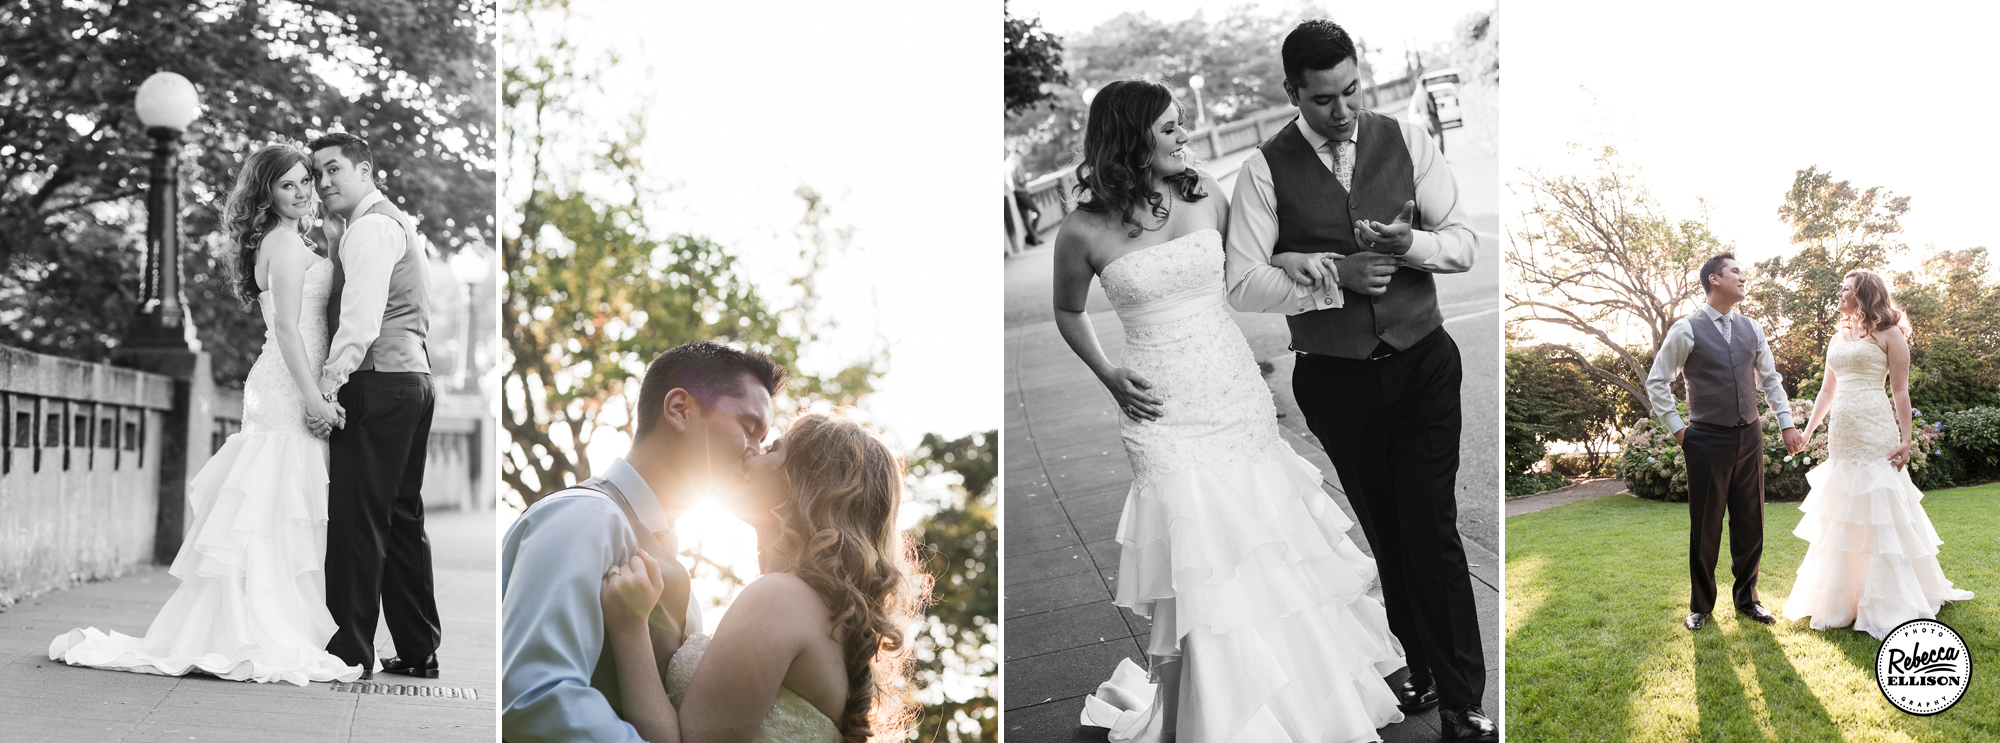 Bride and groom at sunset at their Parsons Garden wedding featuring a white strapless mermaid dress at Parsons Garden